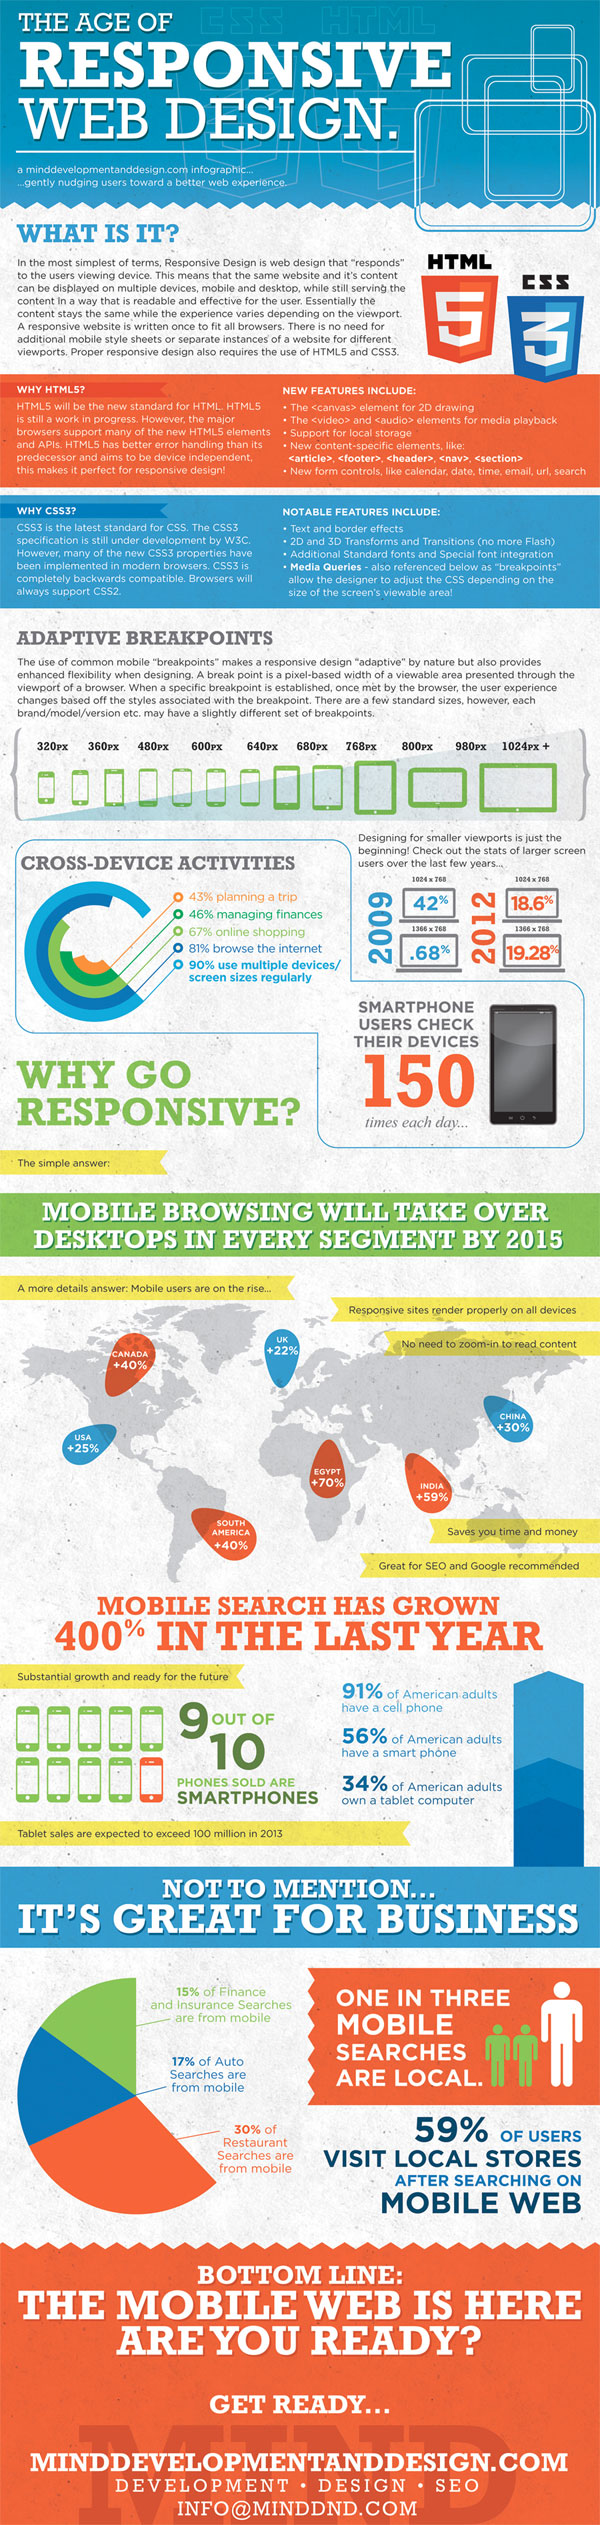 The age of responsive web design